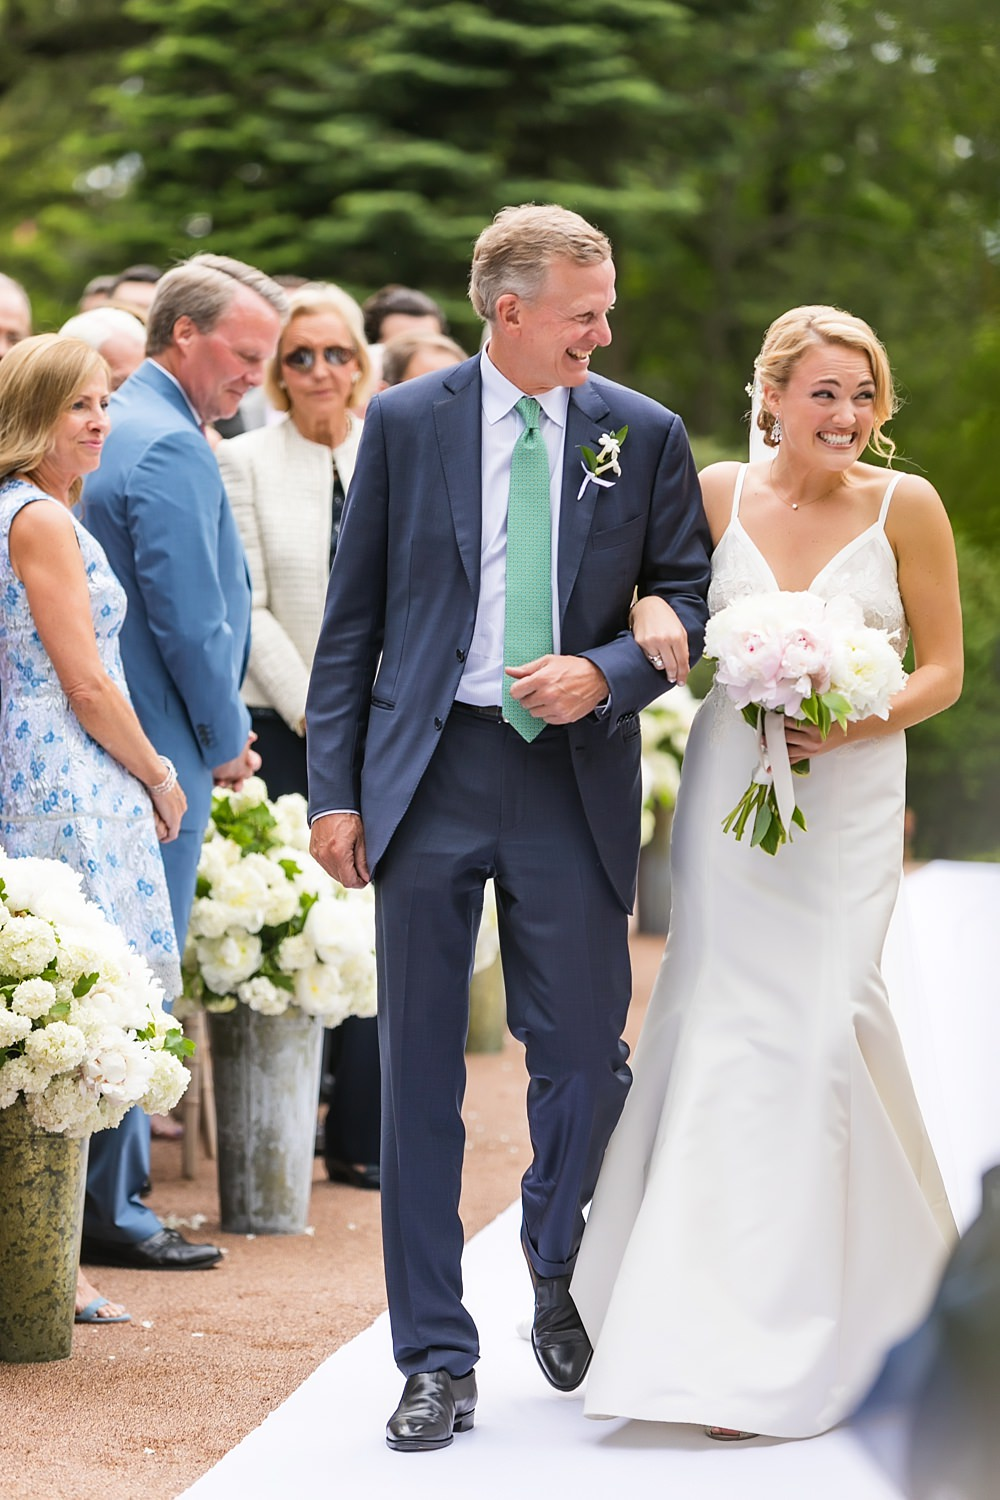 greenwich wedding : memorial day weekend wedding : jody ewen events : vue photography 0095